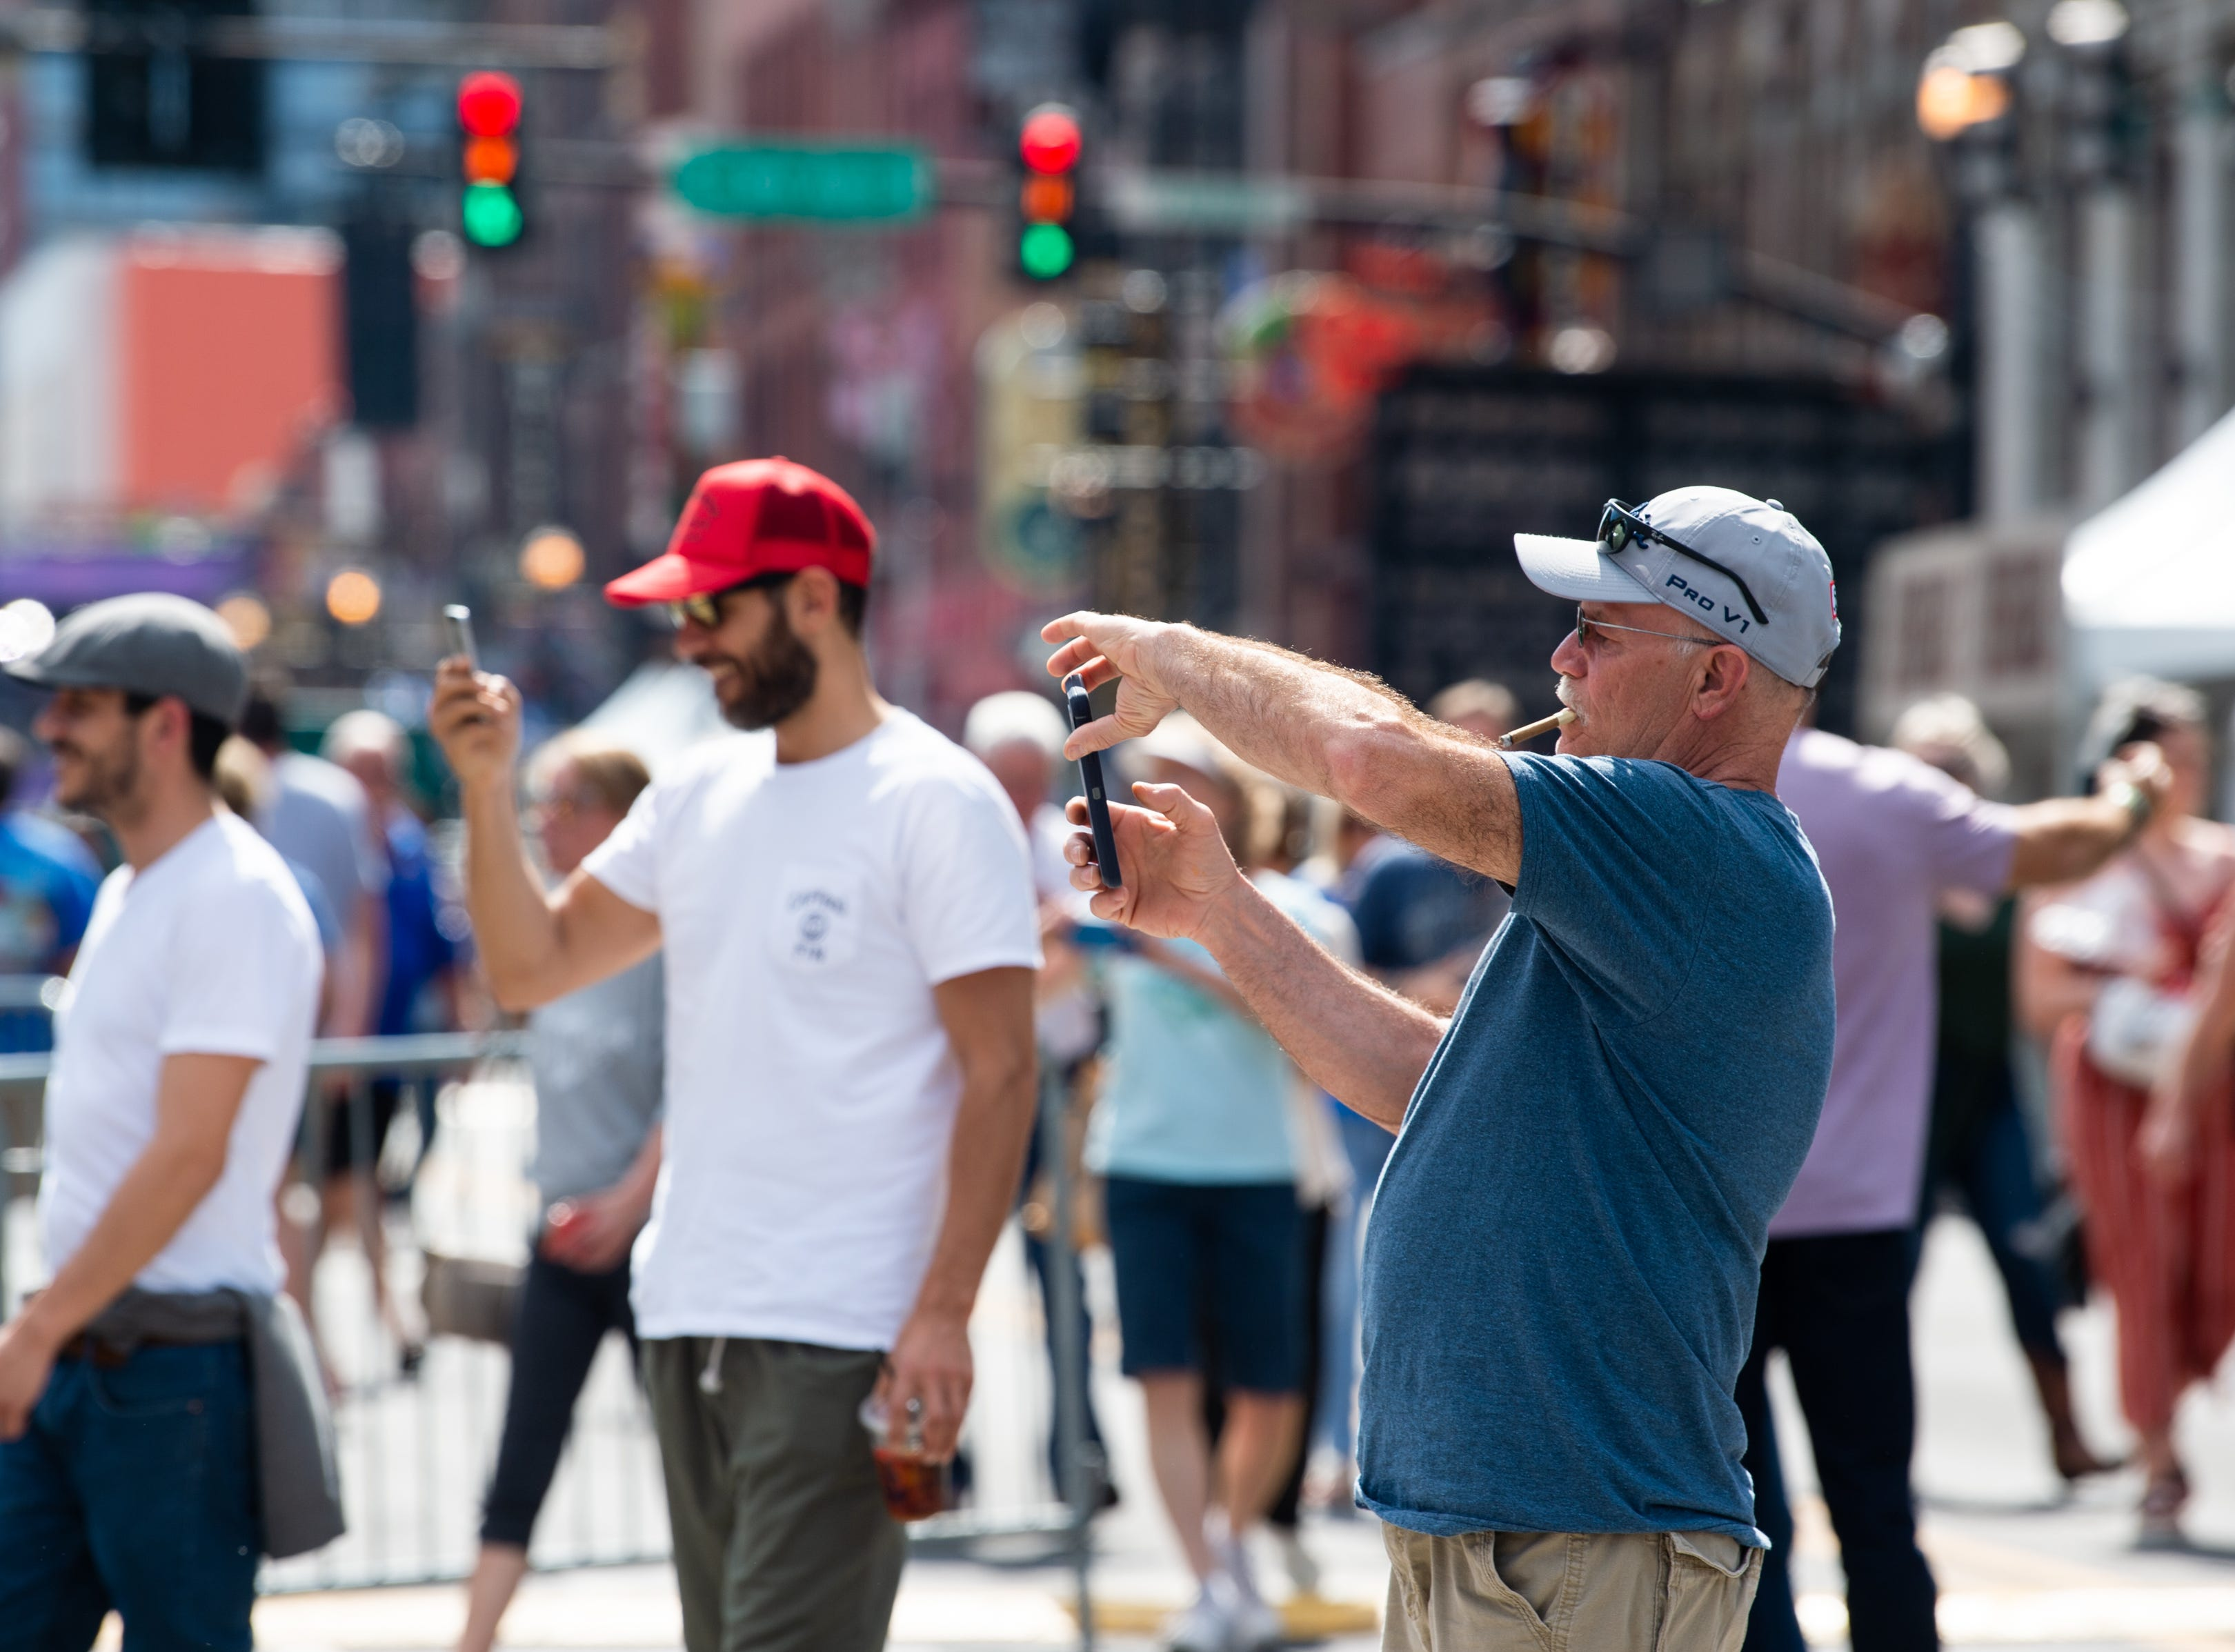 People take photos along Broadway before the NFL Draft Wednesday, April 24, 2019, in Nashville, Tenn.